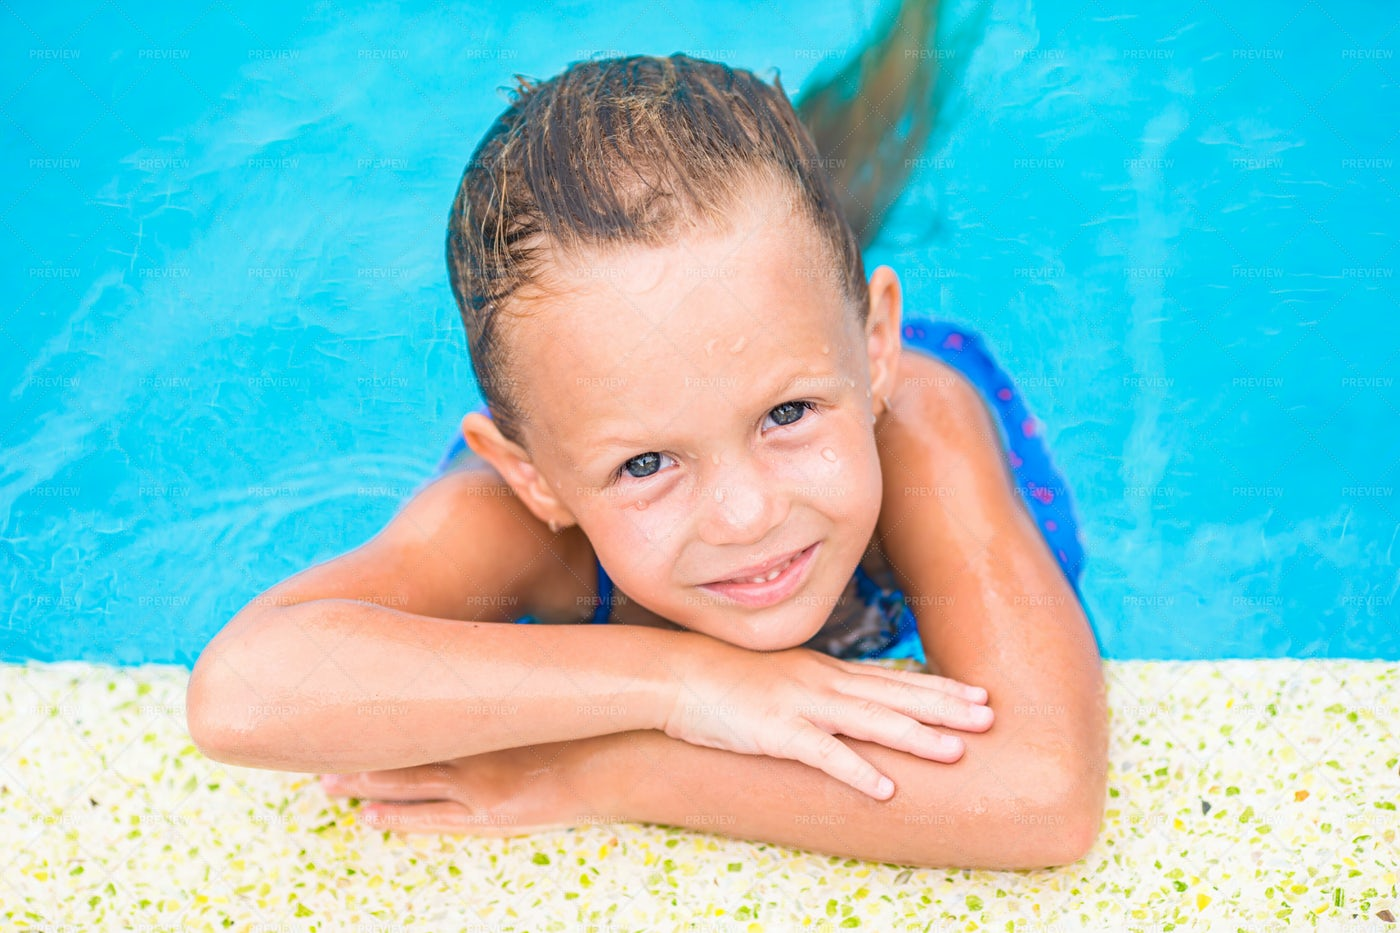 Kid In A Pool: Stock Photos